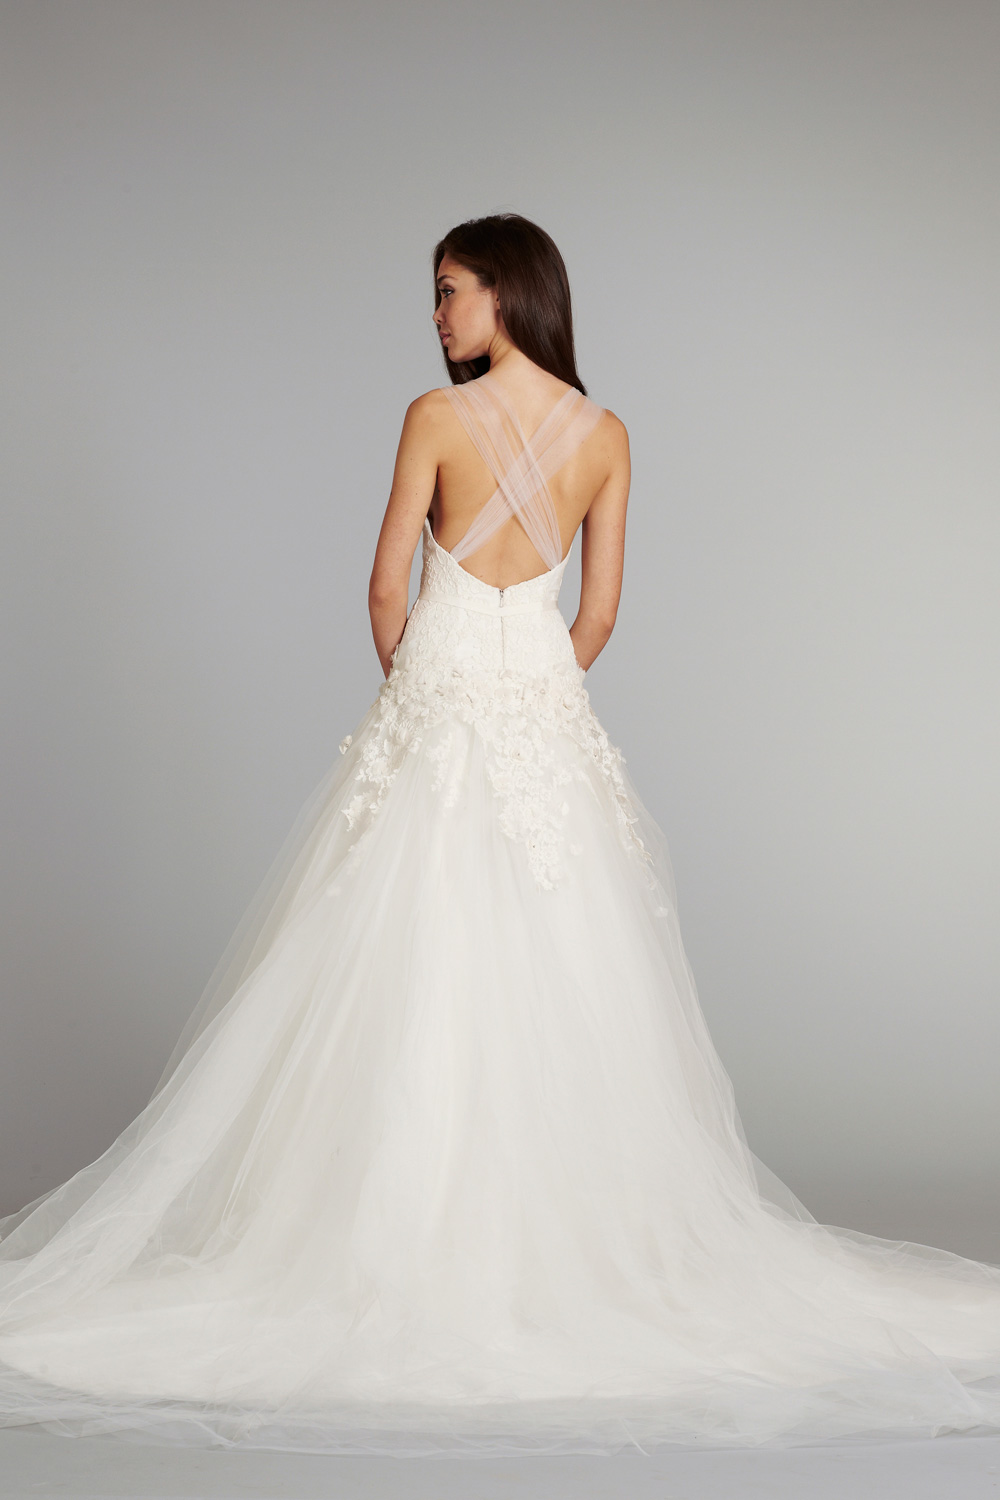 Bridal gown wedding dress jlm hayley paige fall 2012 for Hayley paige wedding dress